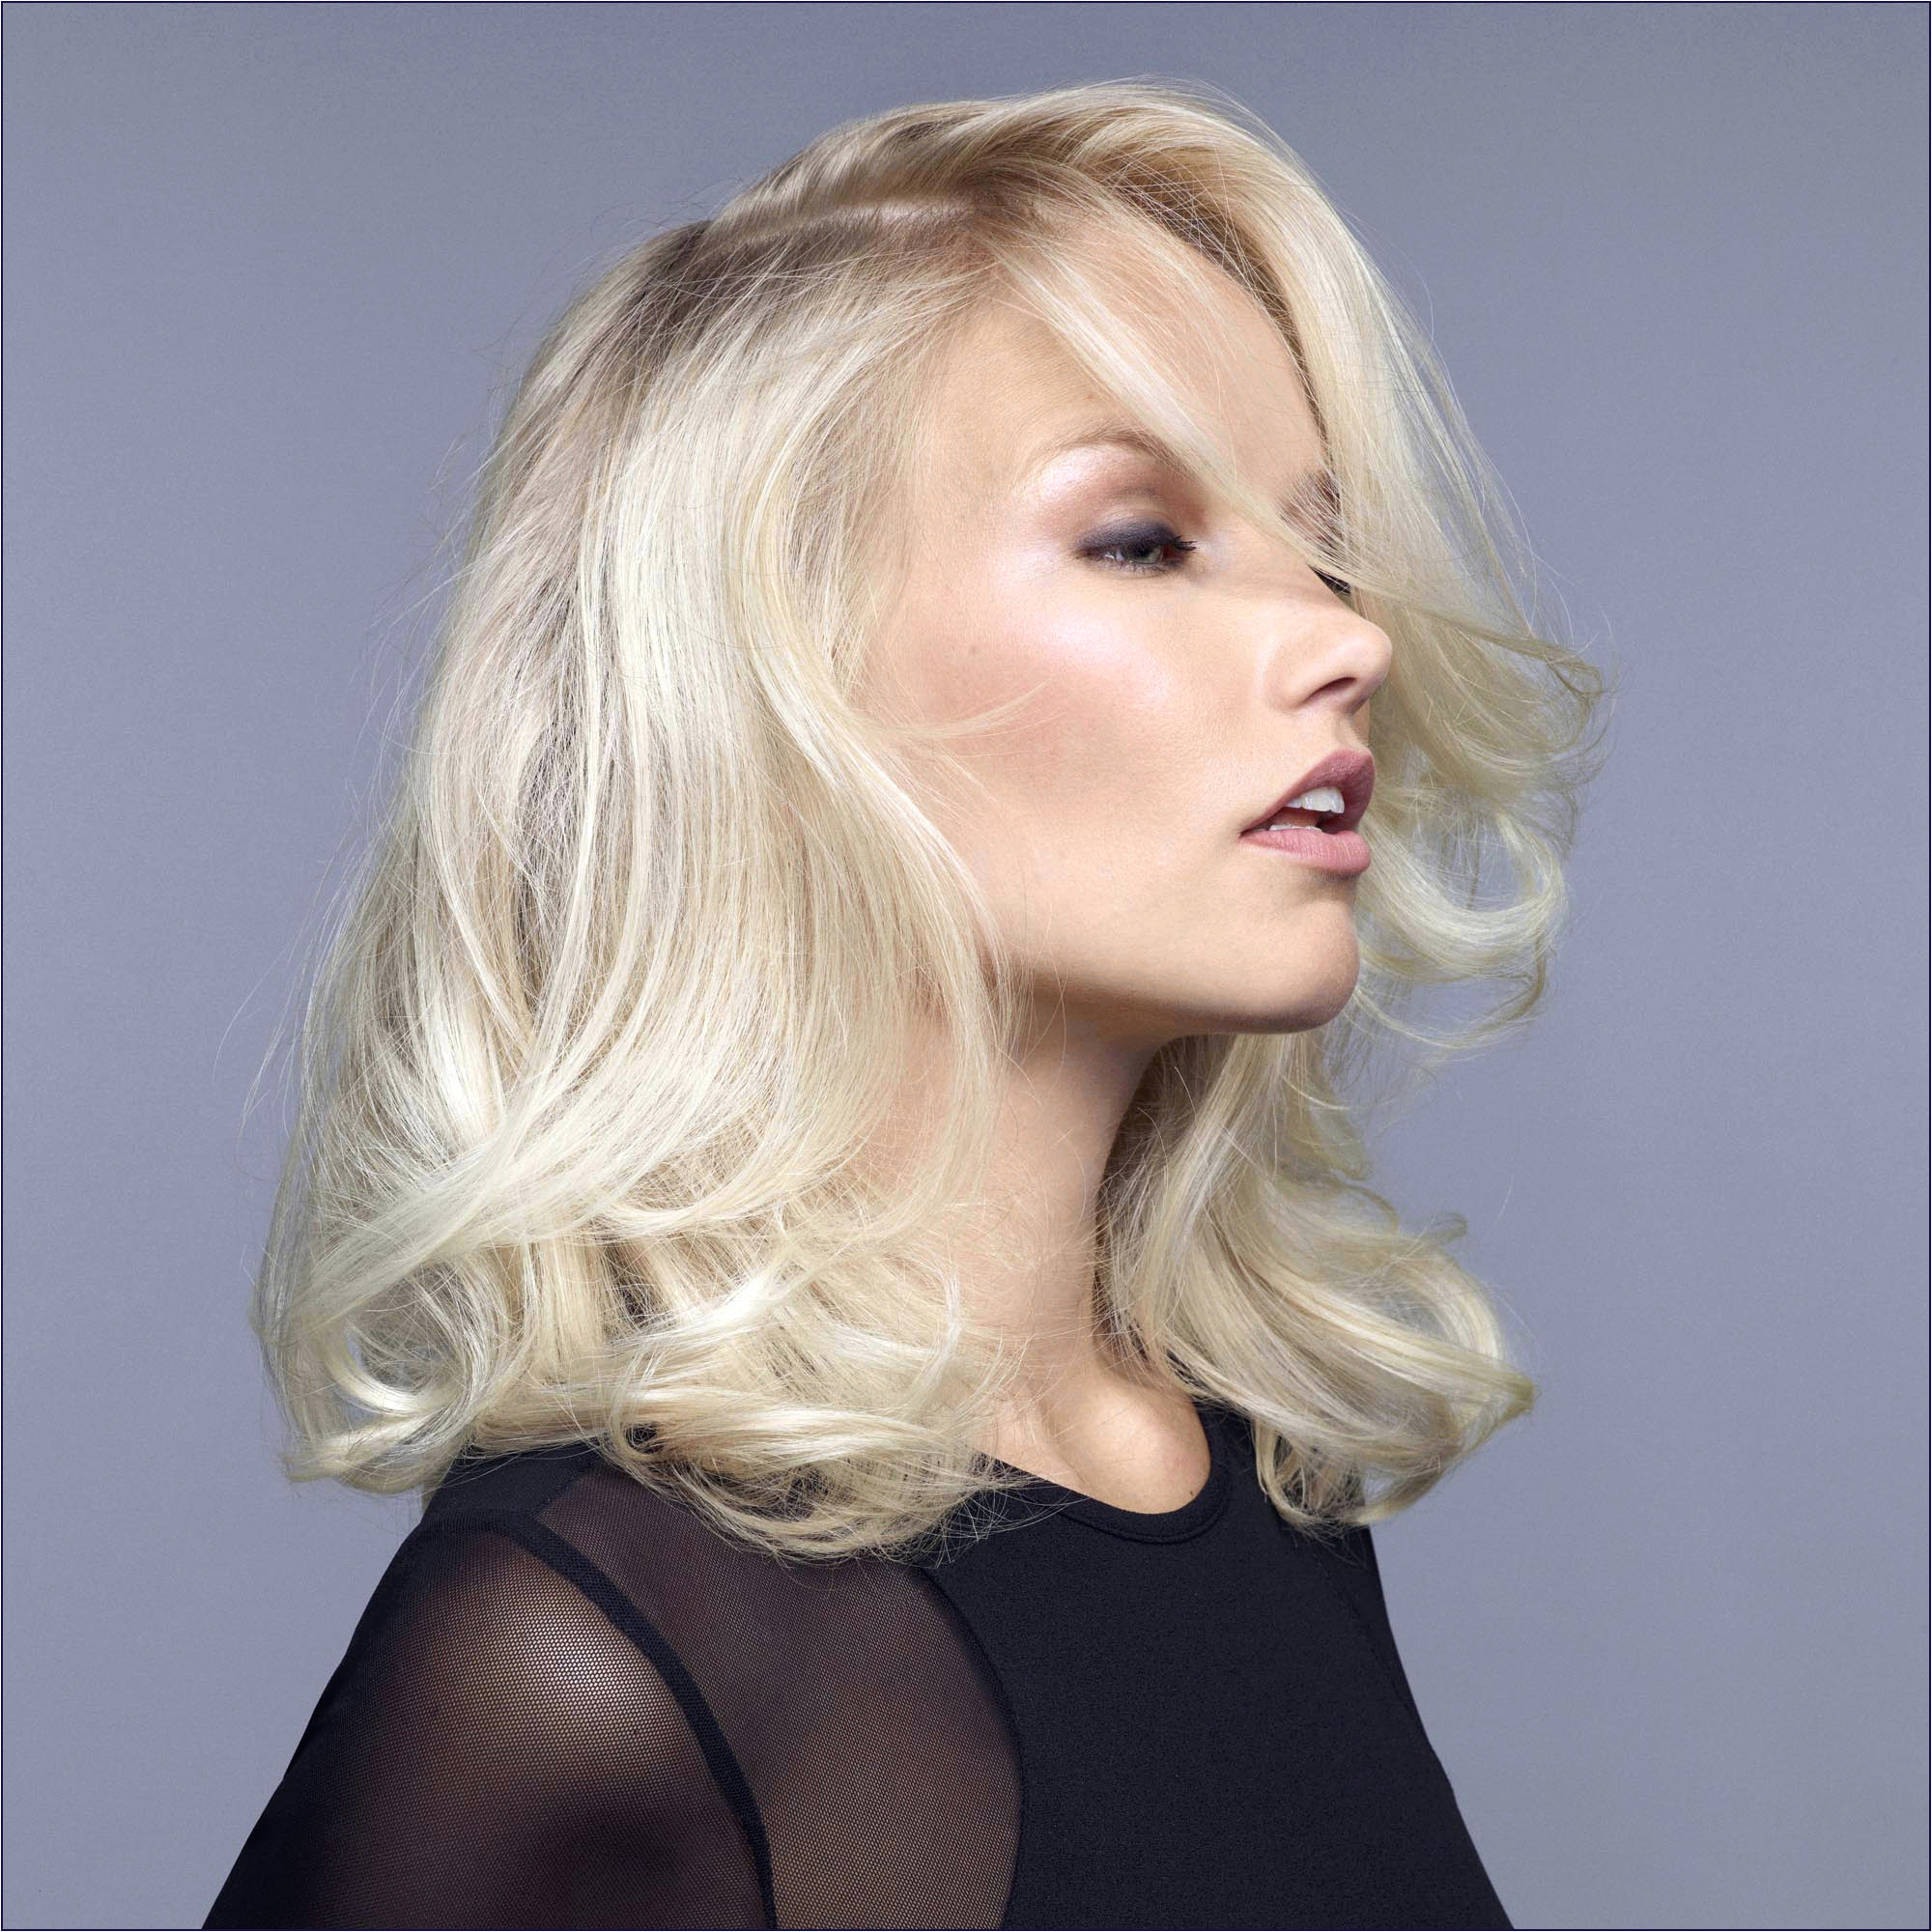 Feathered Hairstyles for Medium Length Hair Inspirational Upstyles for Medium Length Hair